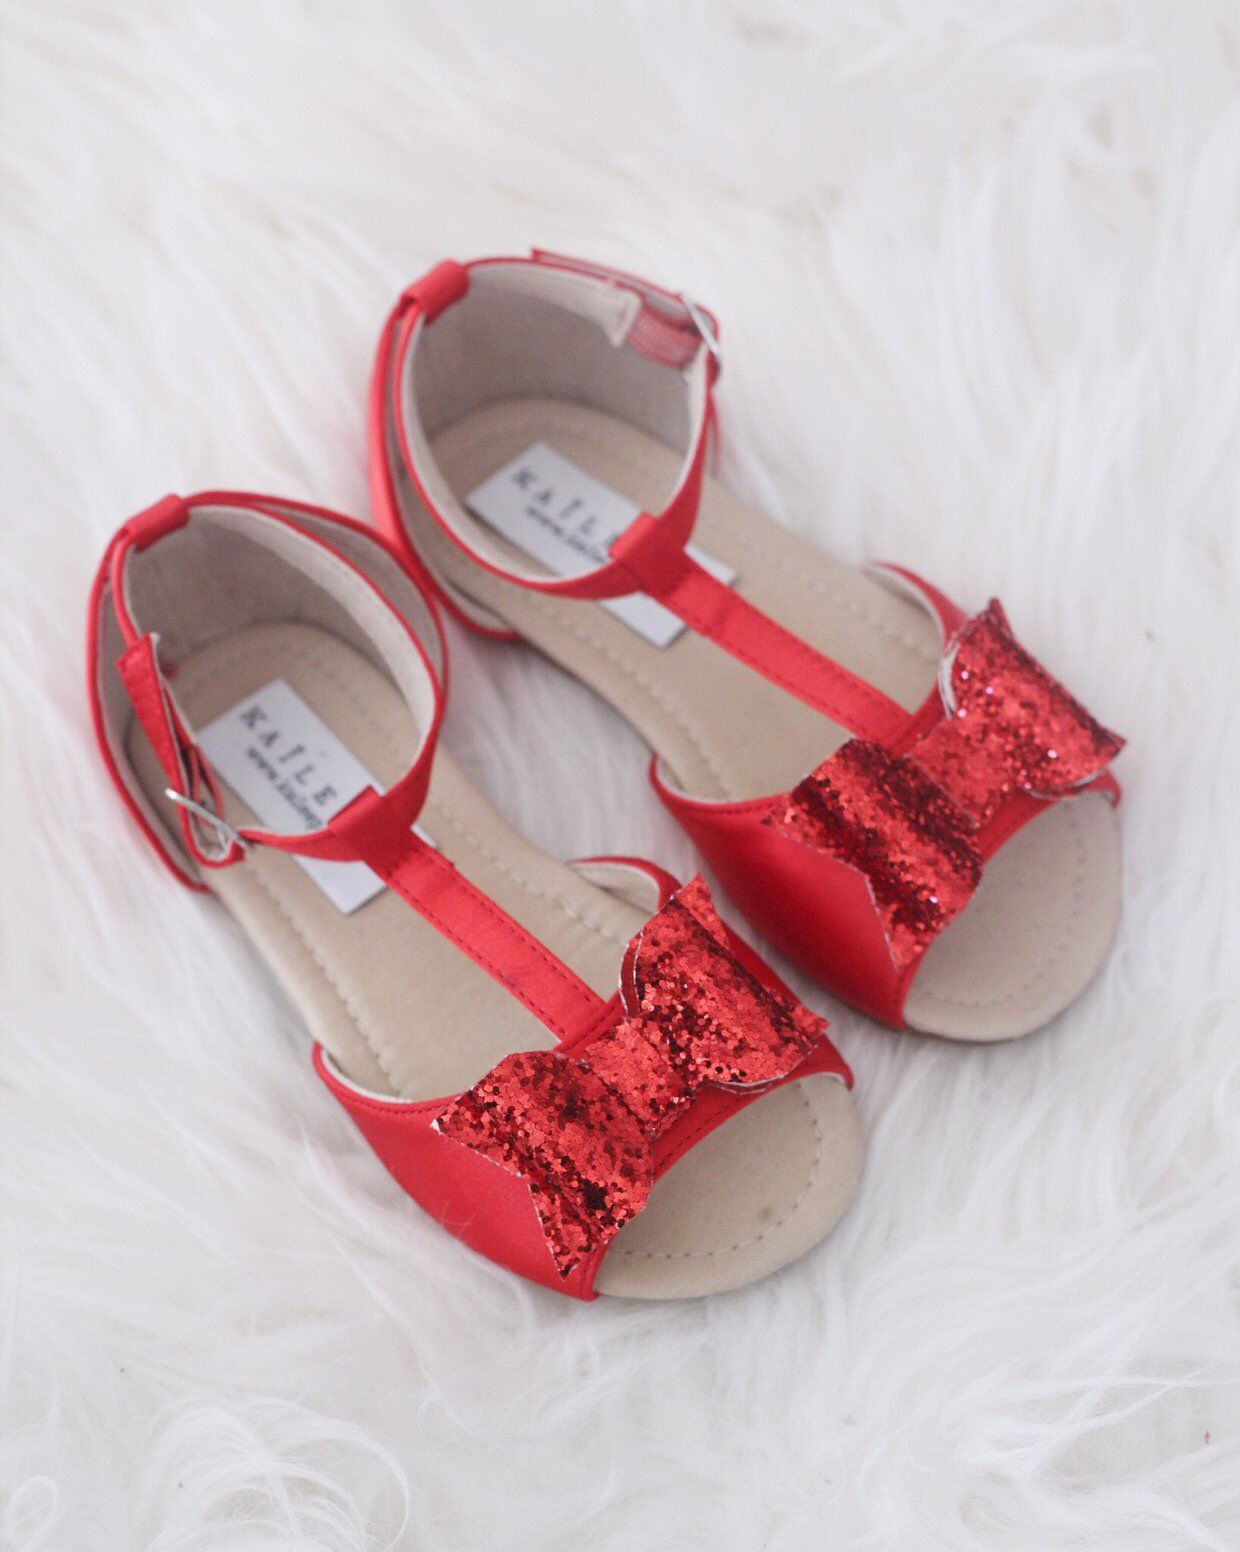 8c791efdc05c Excited to share this item from my #etsy shop: RED Satin T-strap Flats with  Rock Glitter Bow - for flower girls, toddler girls shoes